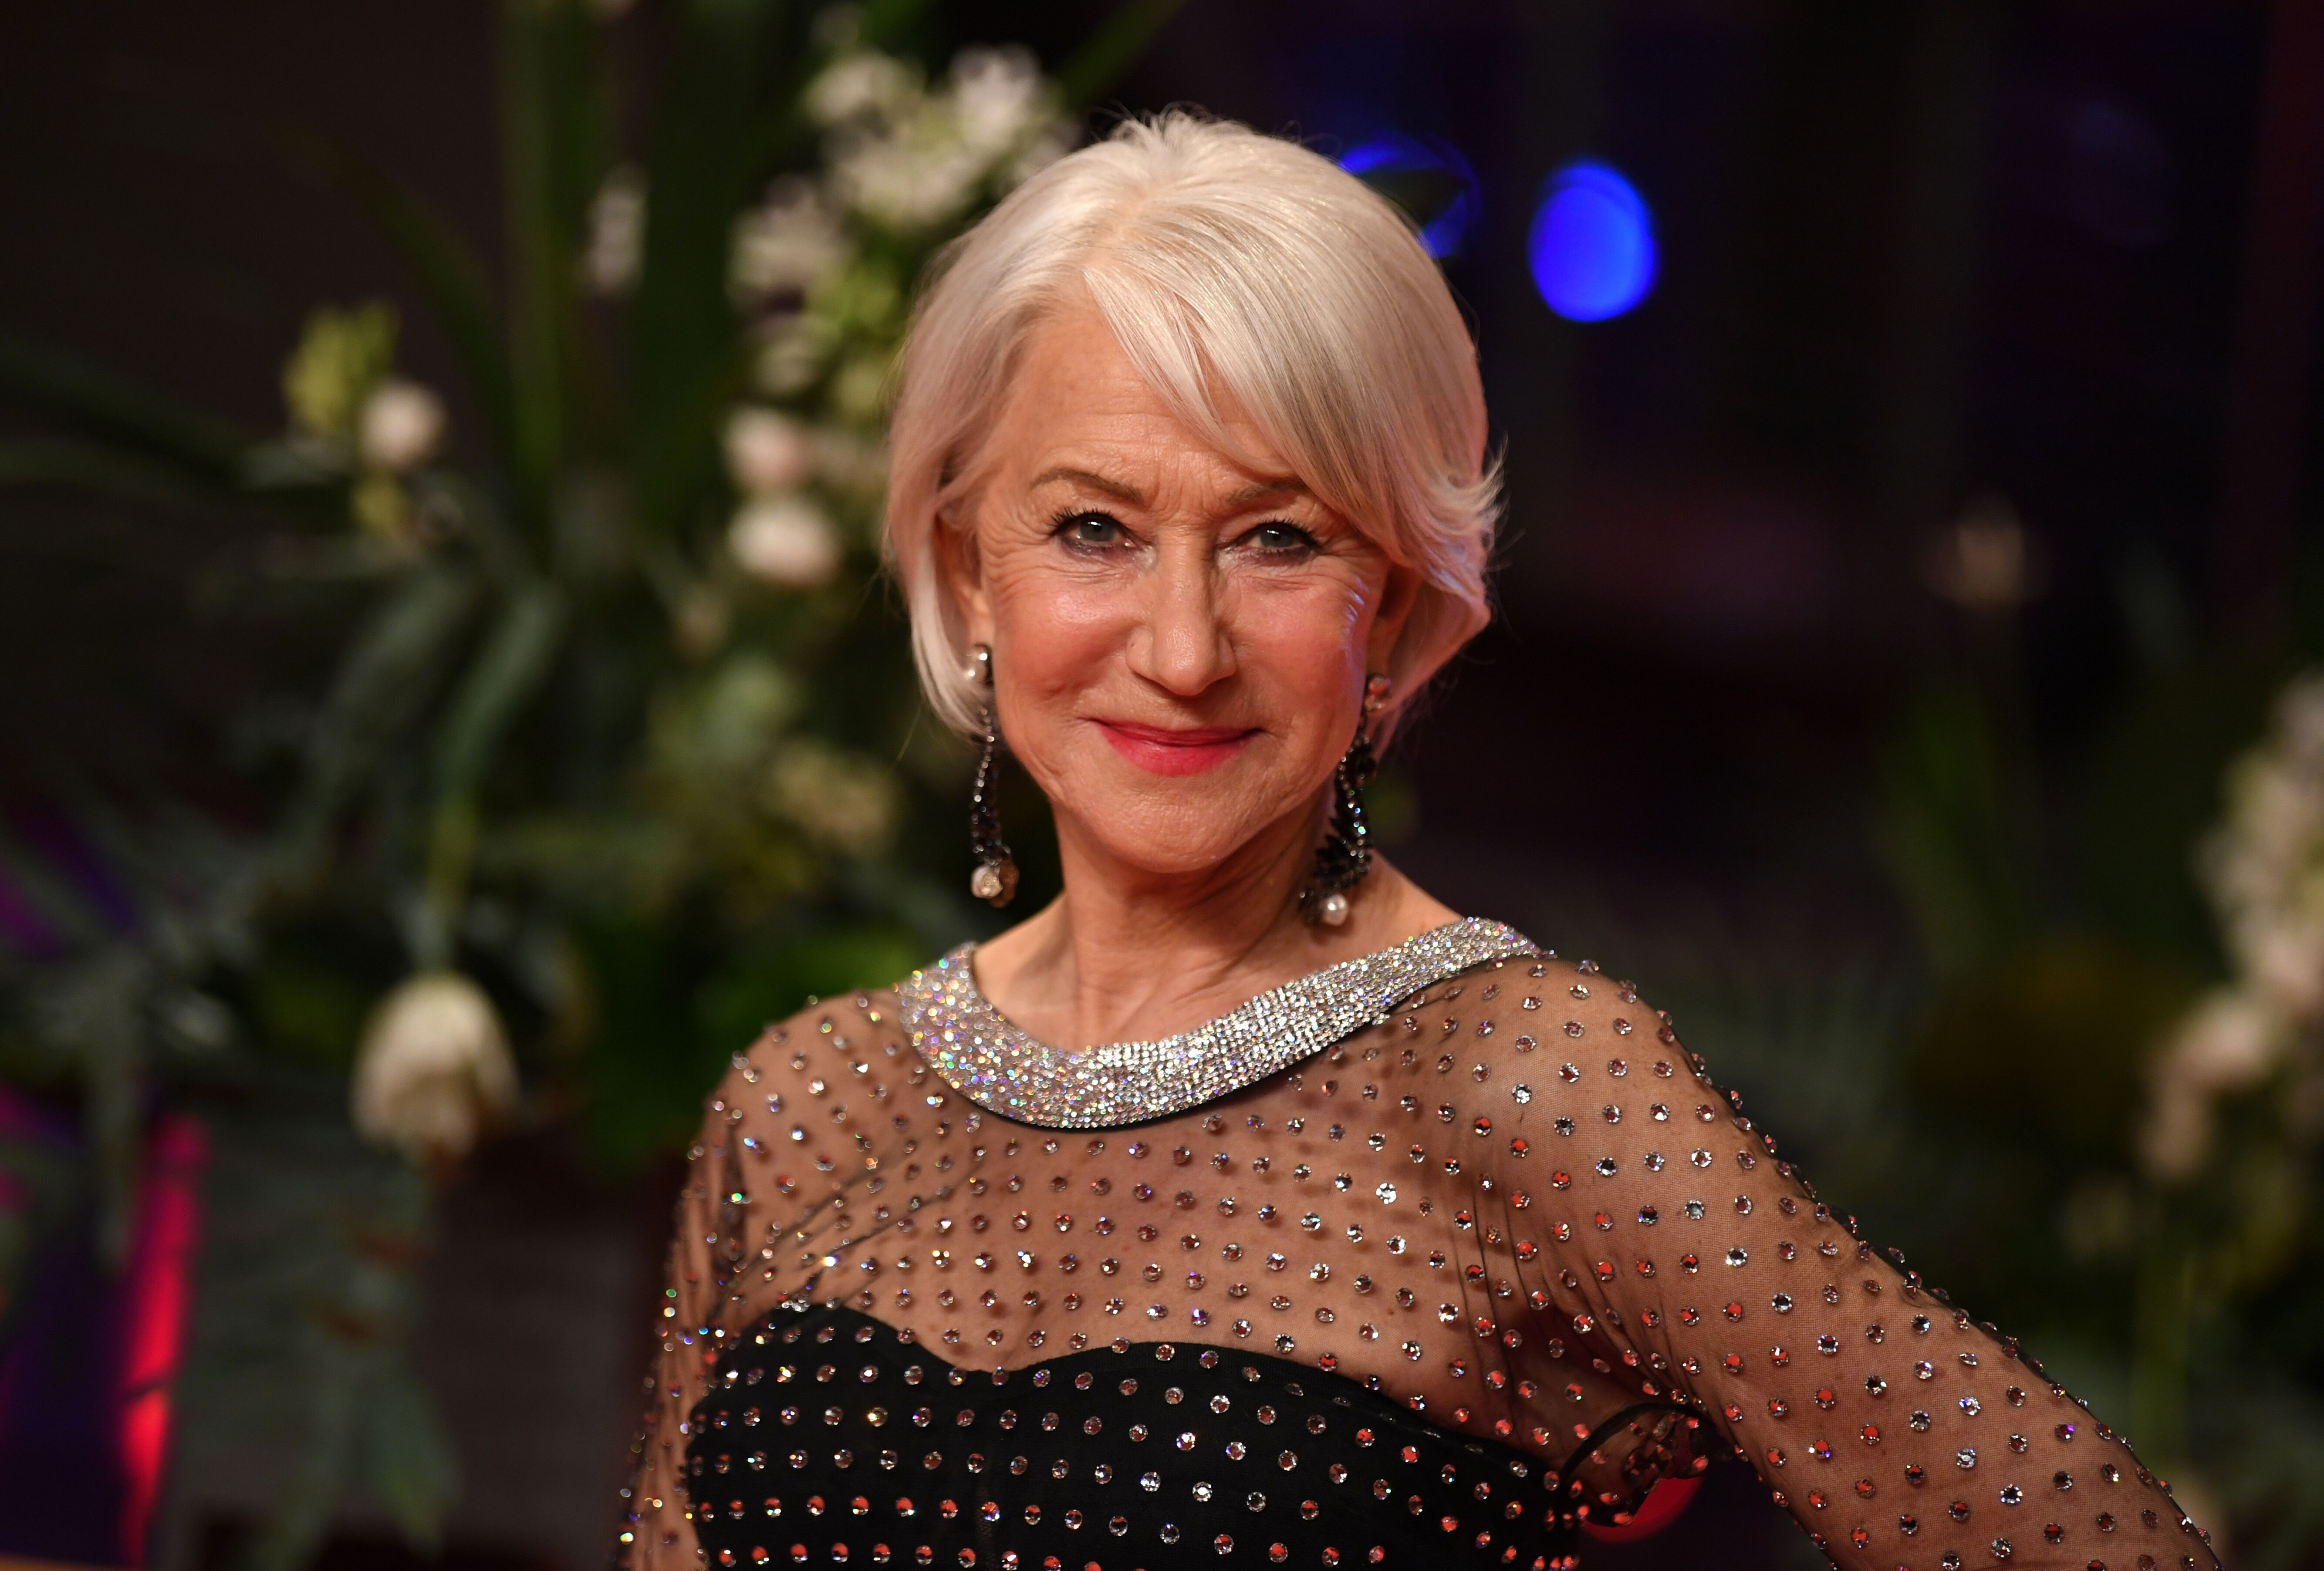 Helen Mirren at the 70th Berlinale International Film Festival on February 27, 2020, in Berlin, Germany | Photo: Britta Pedersen/picture alliance/Getty Images